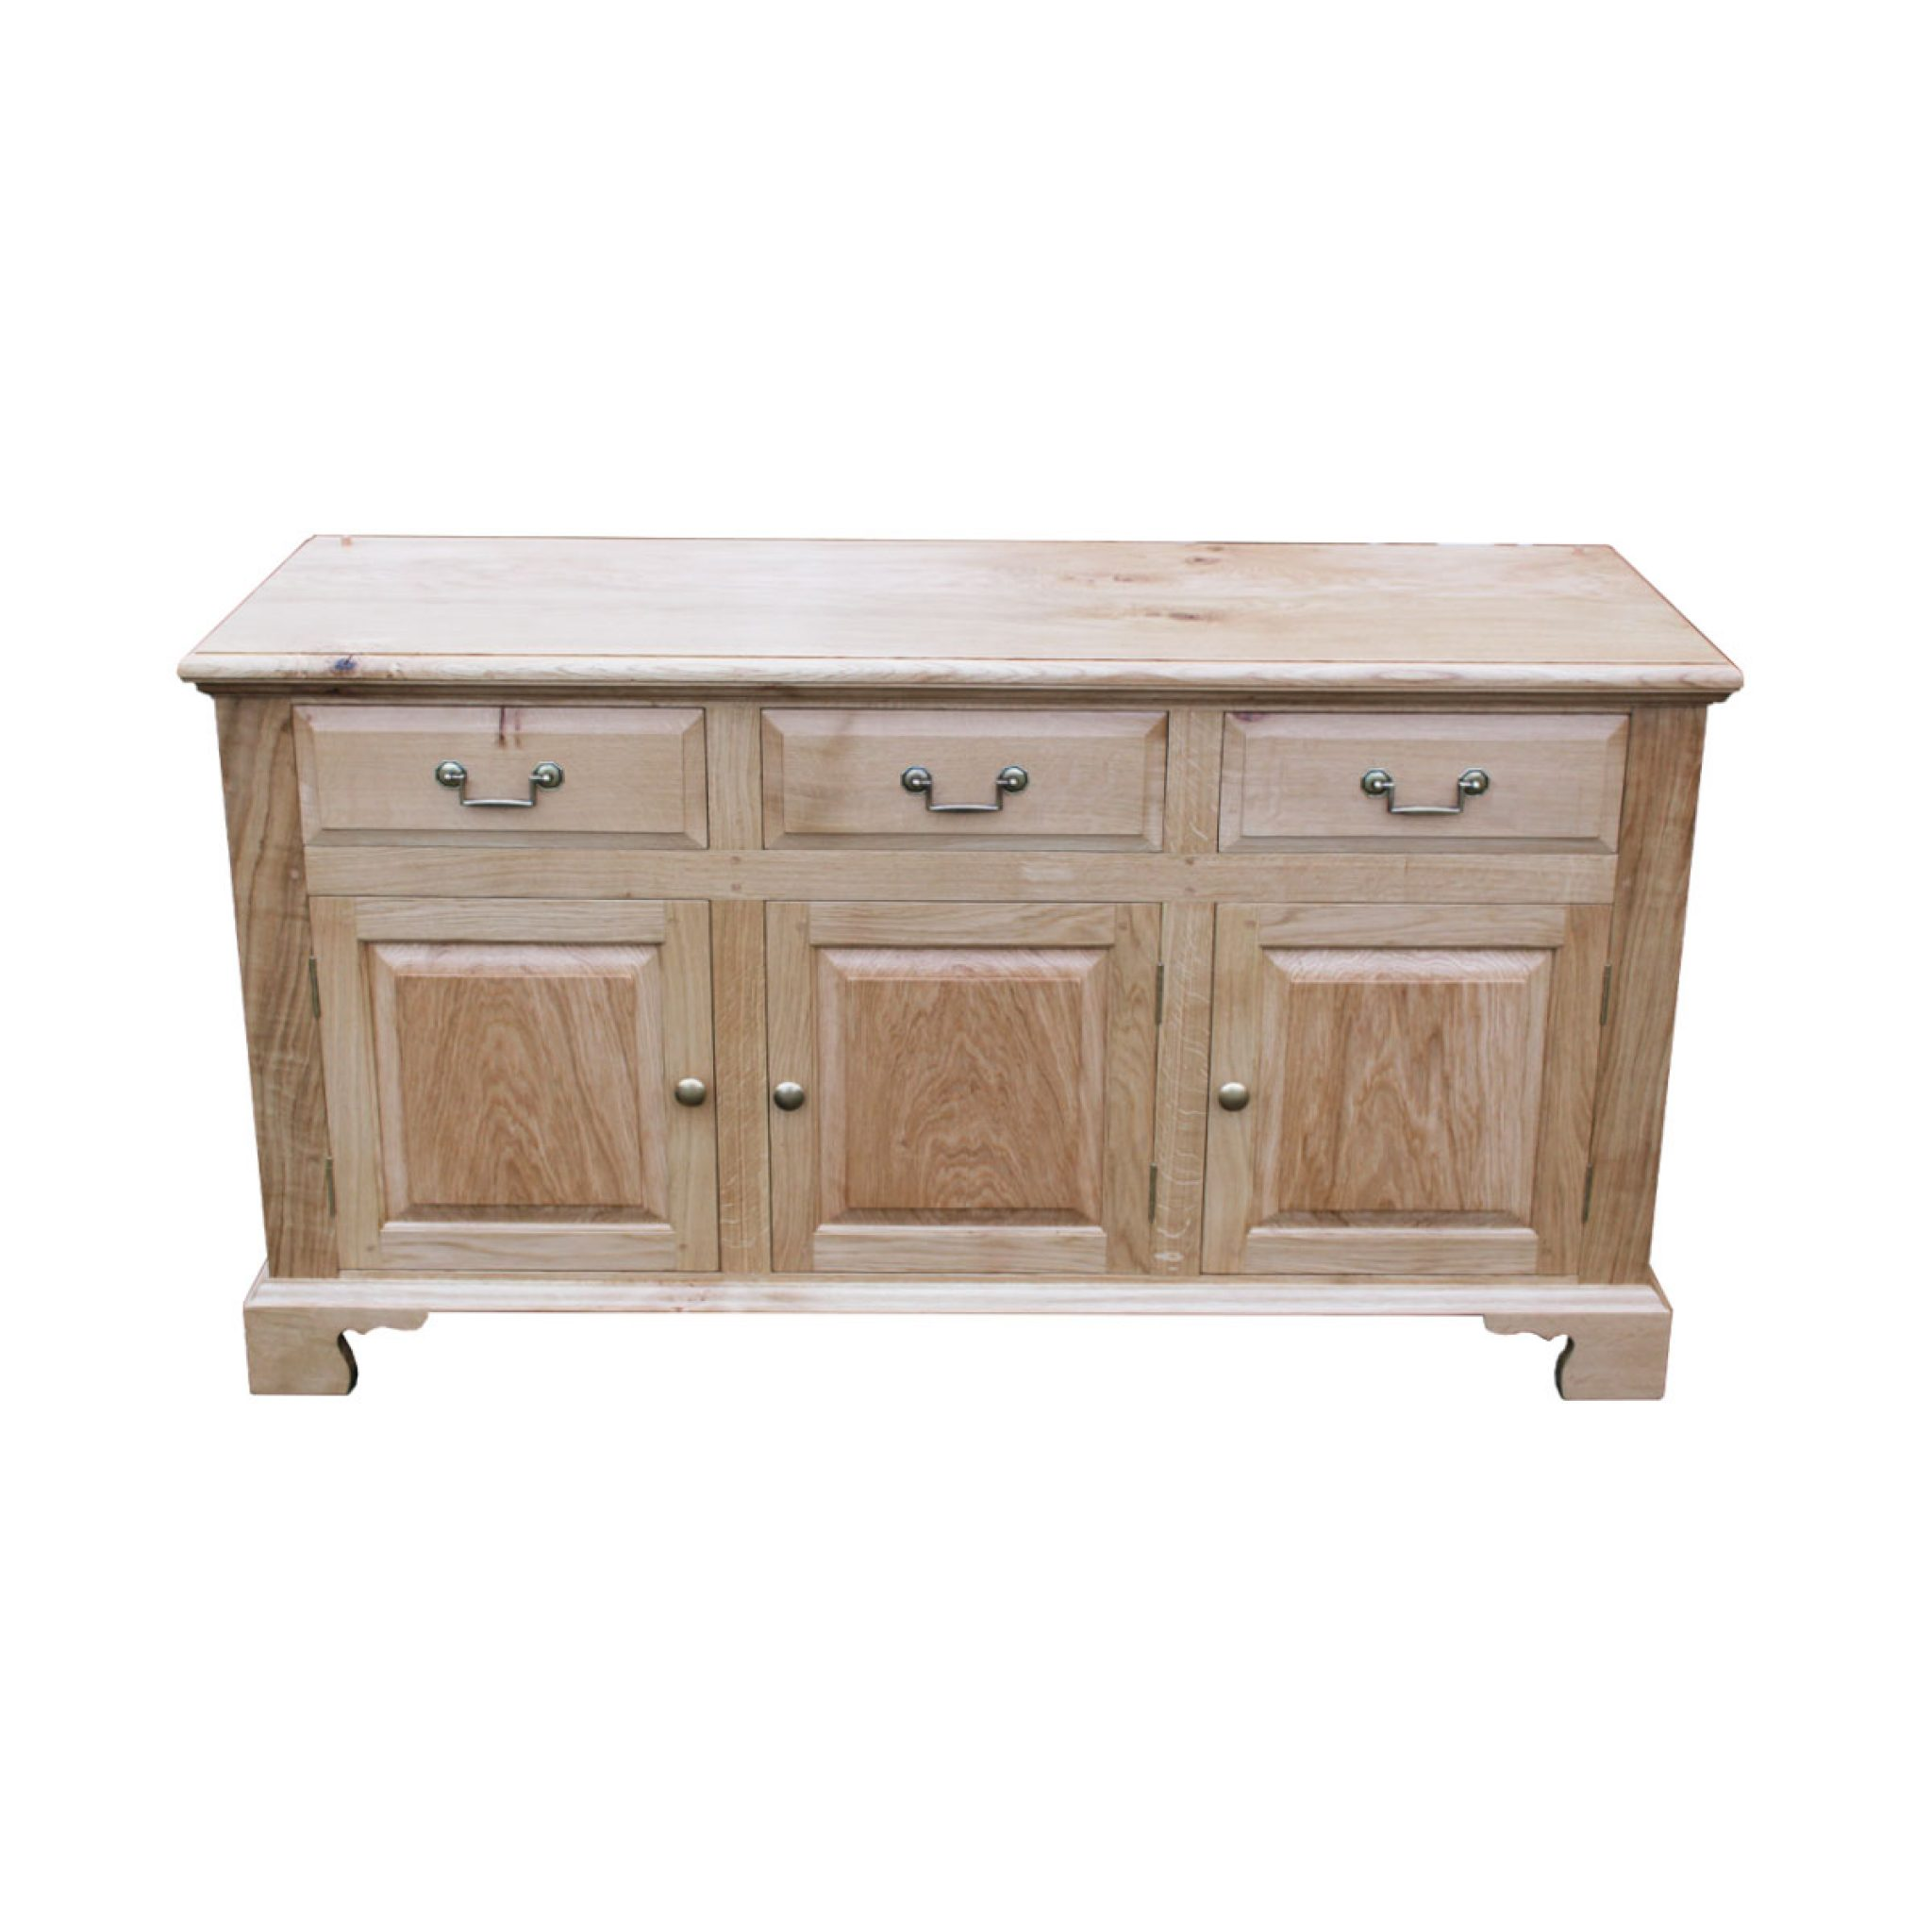 Handmade Oak Furniture Burntwood